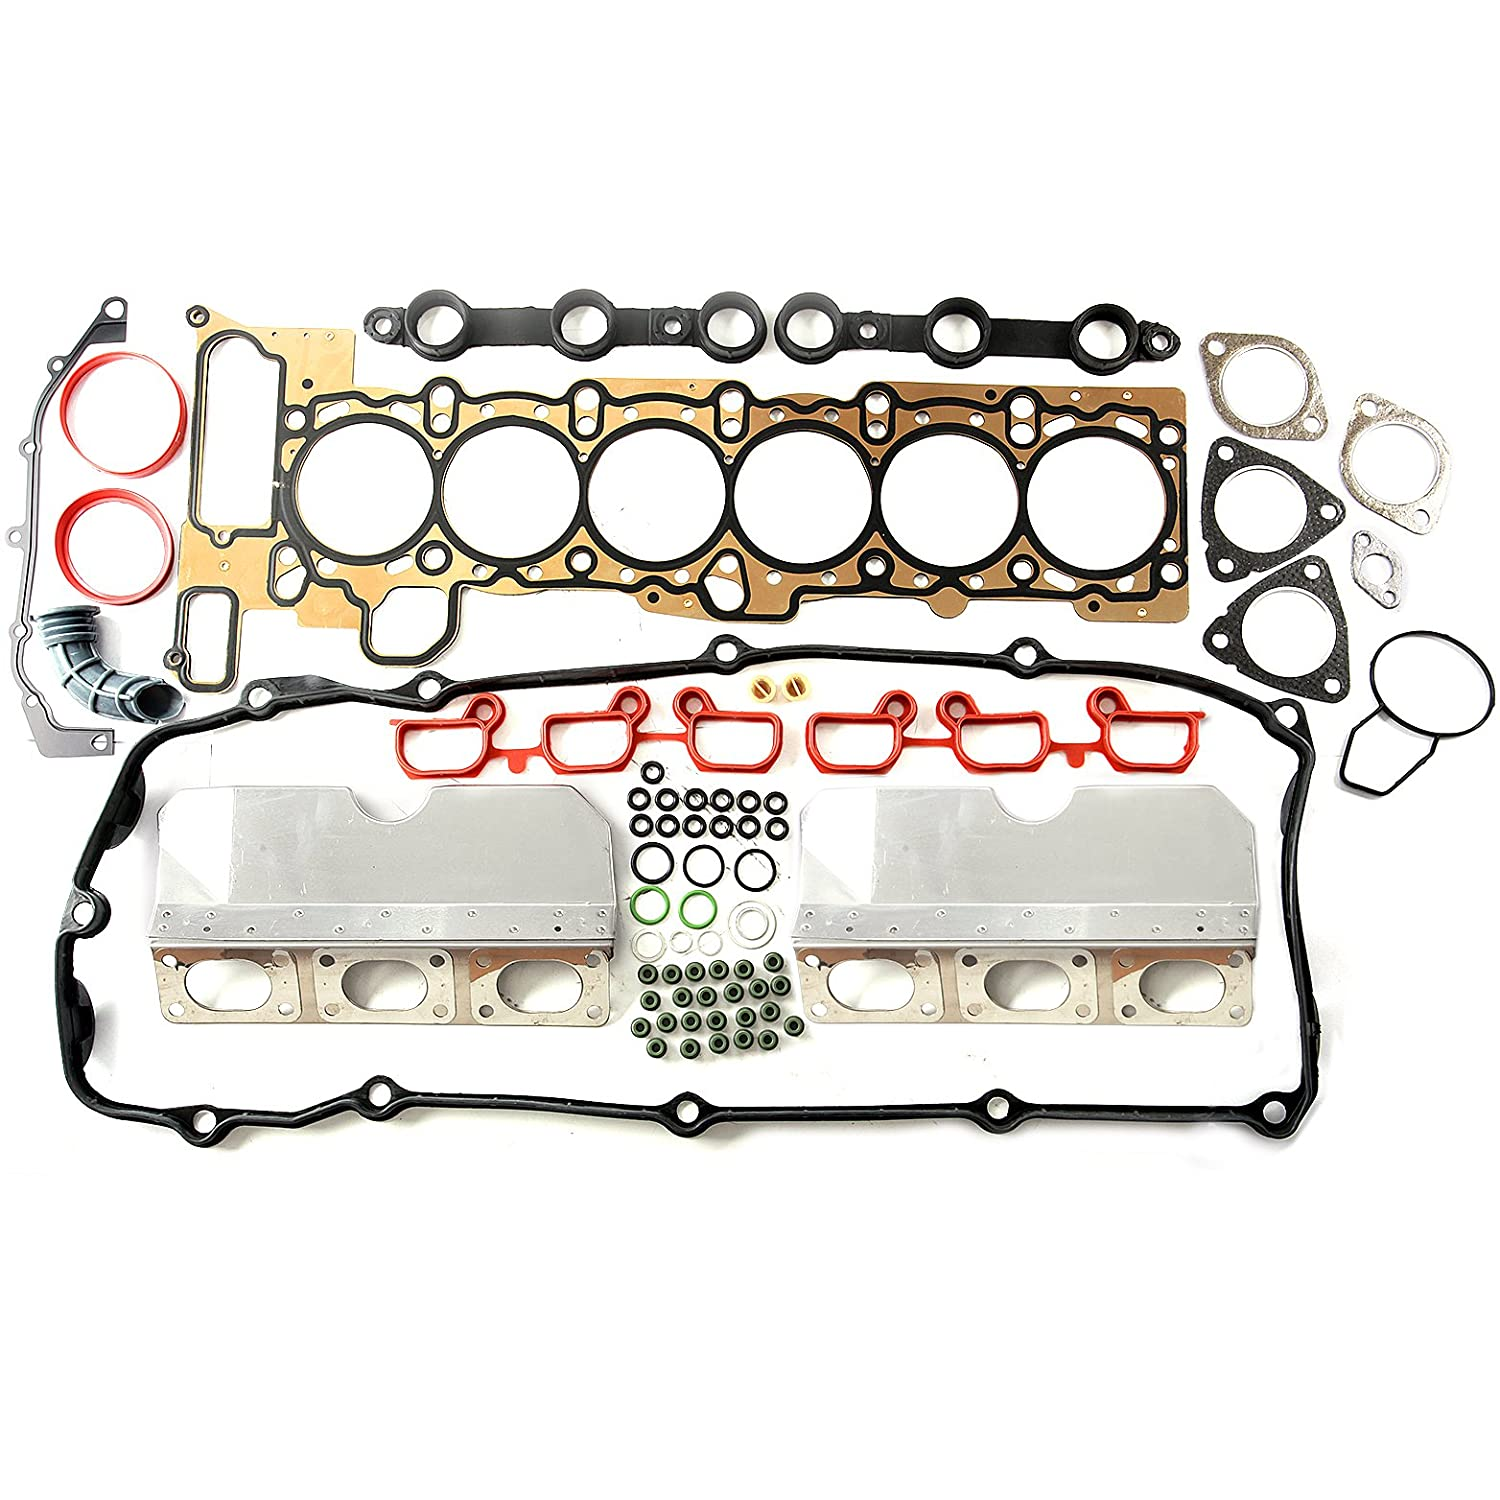 SCITOO Head Gasket Sets, fit BMW Z3 Z4 X 3 X5 325 330i 525 530i 2.5 3.0L M54 256S4 2001-2006 Engine Head Gaskets Automotive Replacement Gasket Sets